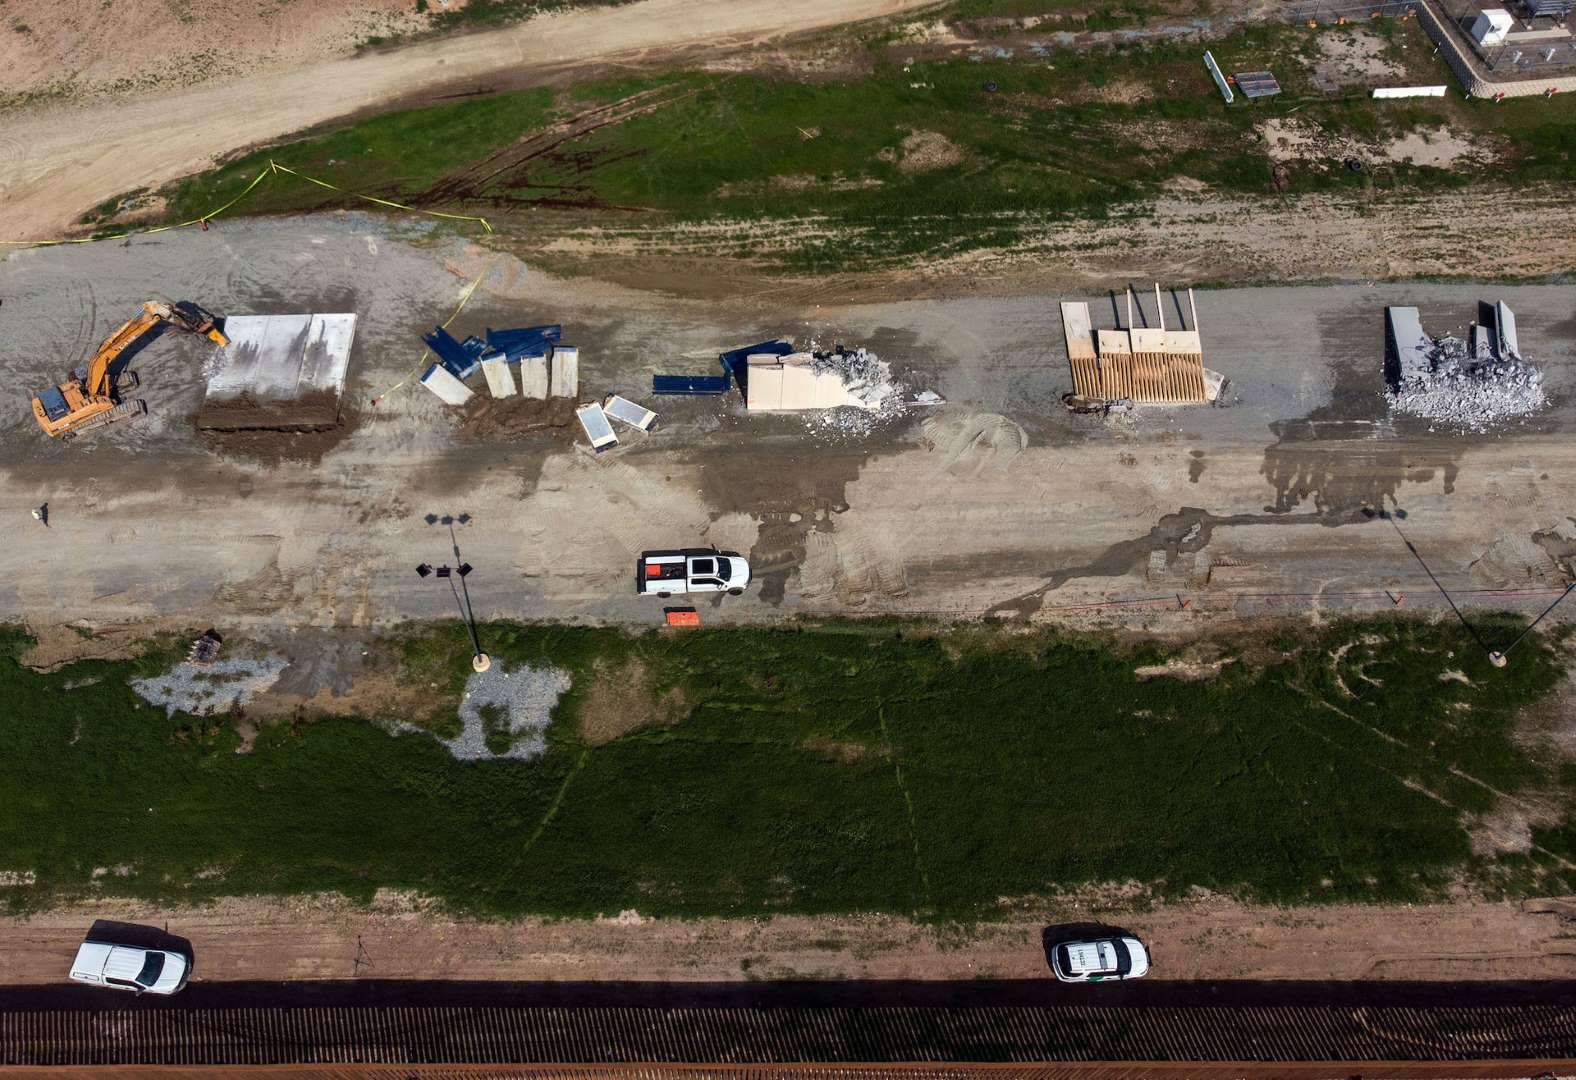 The prototypes for the US-Mexico border wall have been demolished.  @Independent